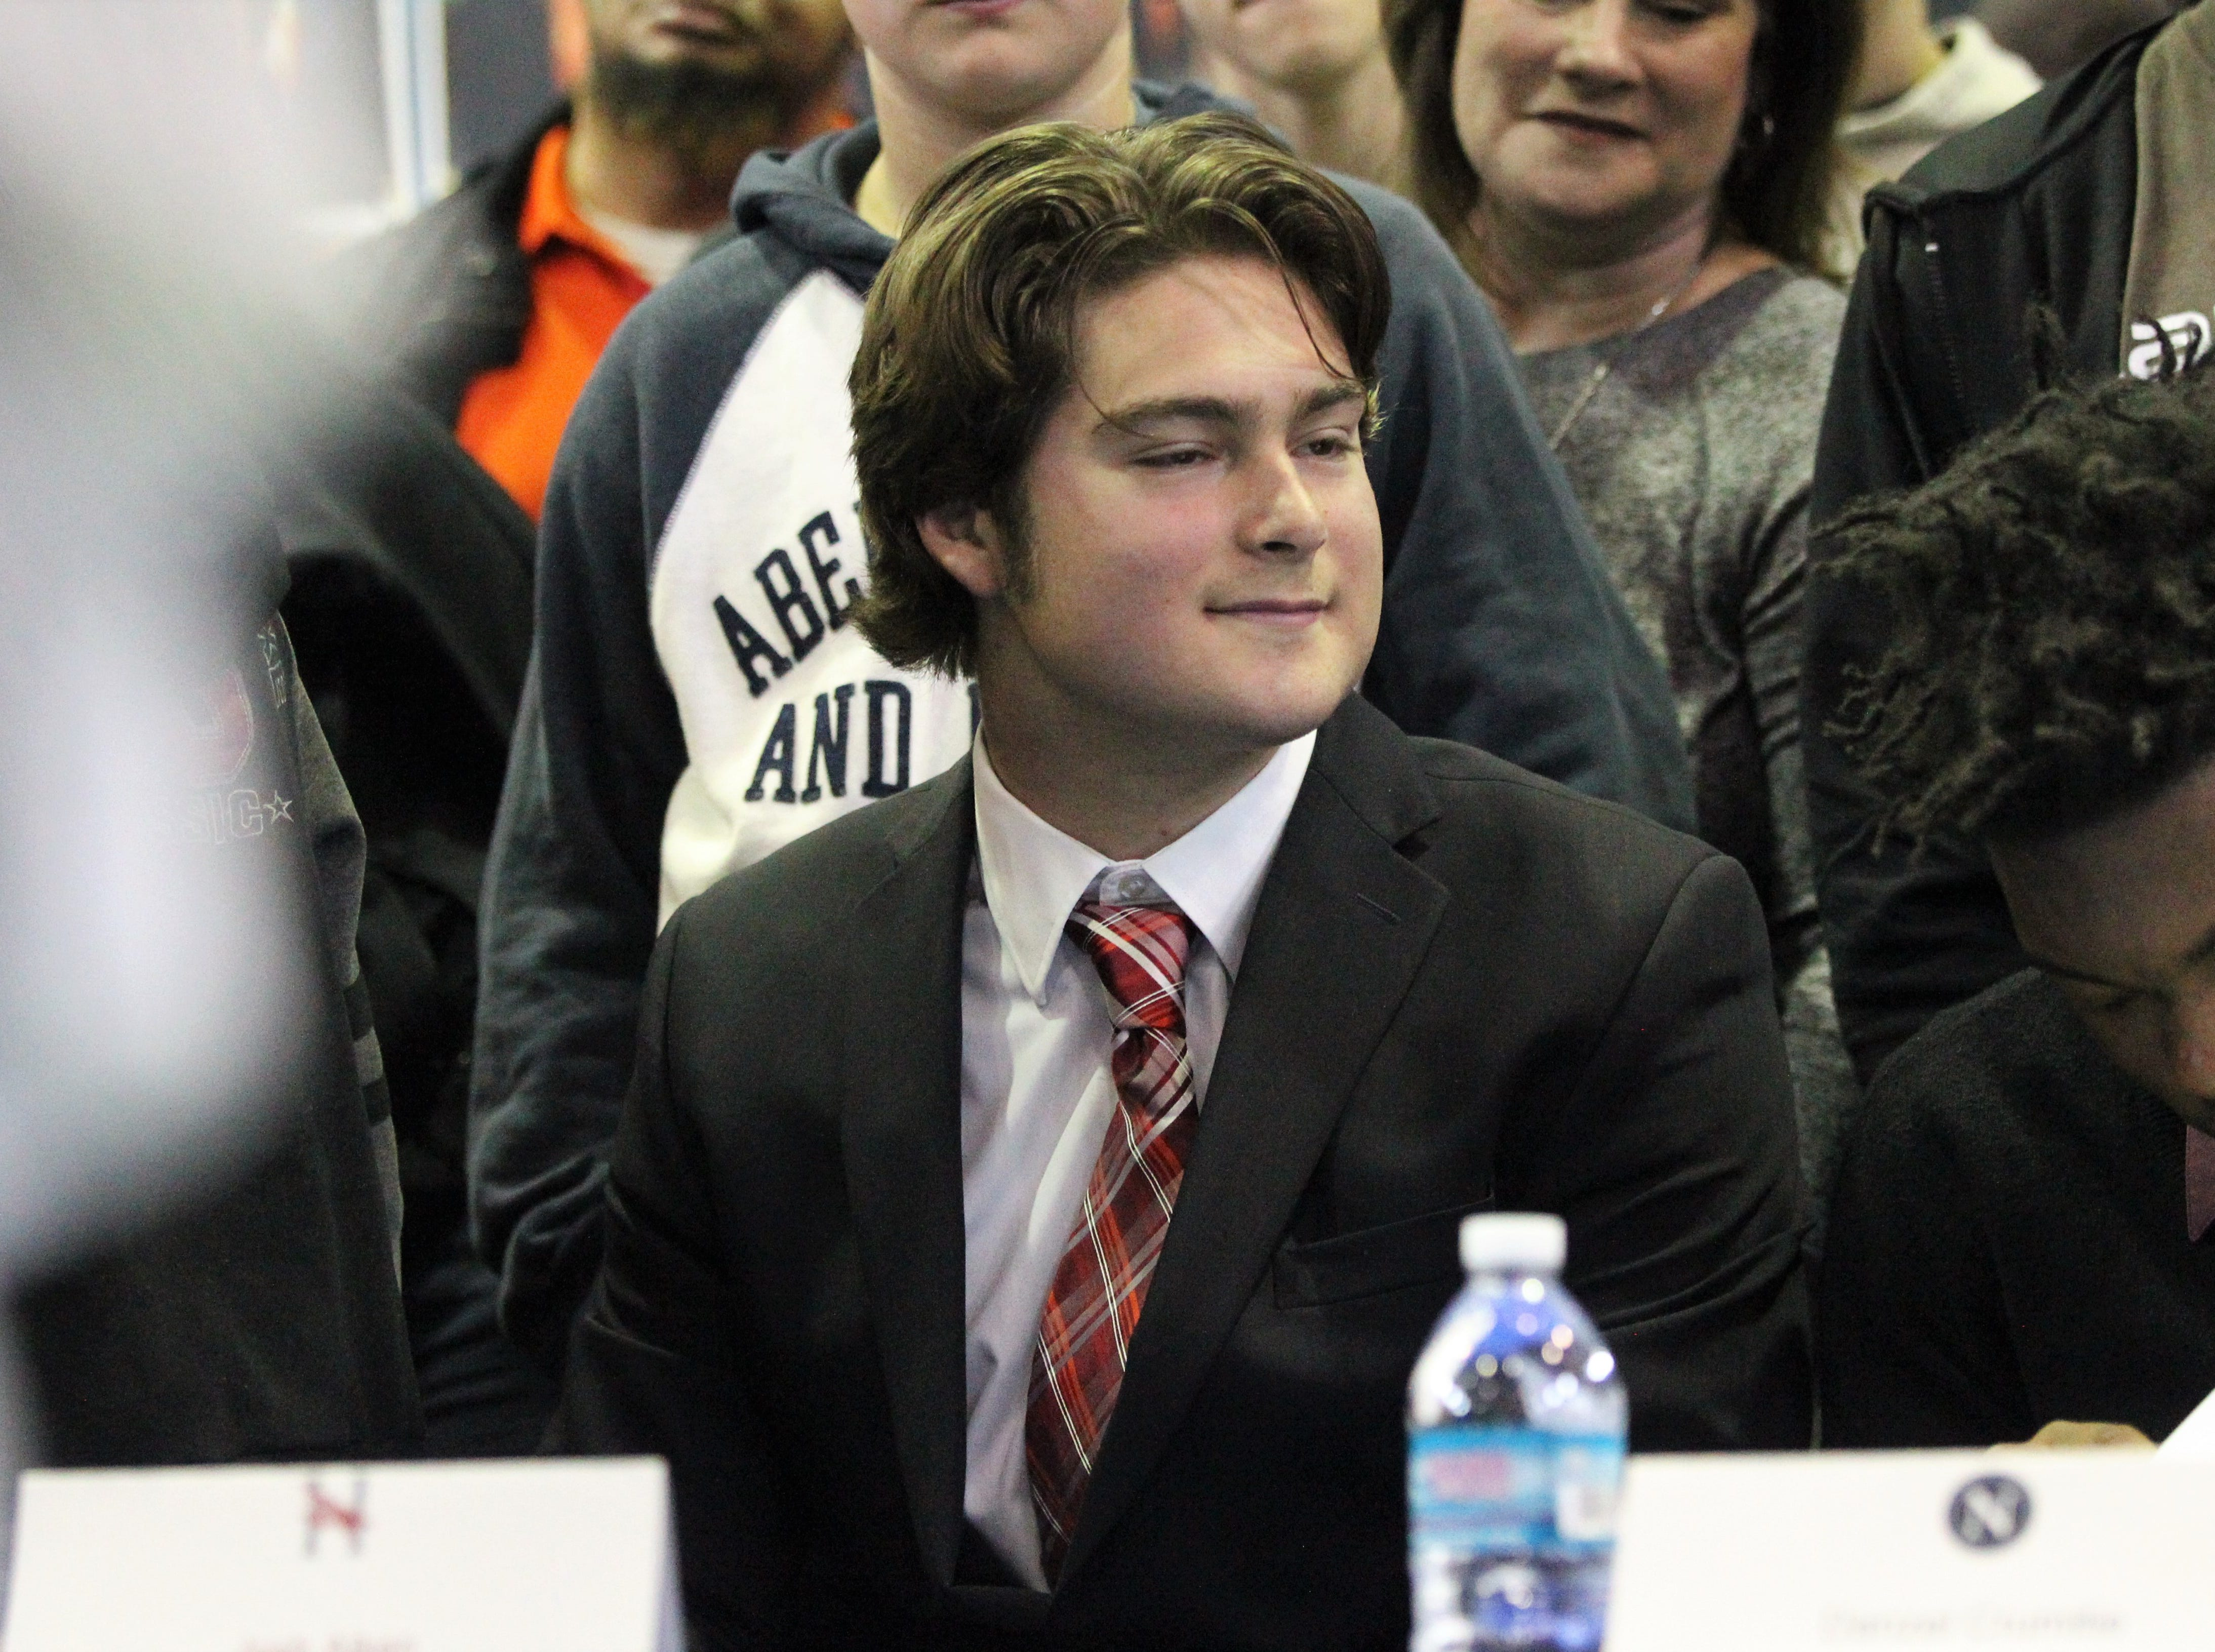 Jefferson County quarterback Josh Aiken, who signed with Huntingdon College, smiles during Jefferson County's signing day ceremony on Feb. 13, 2019.